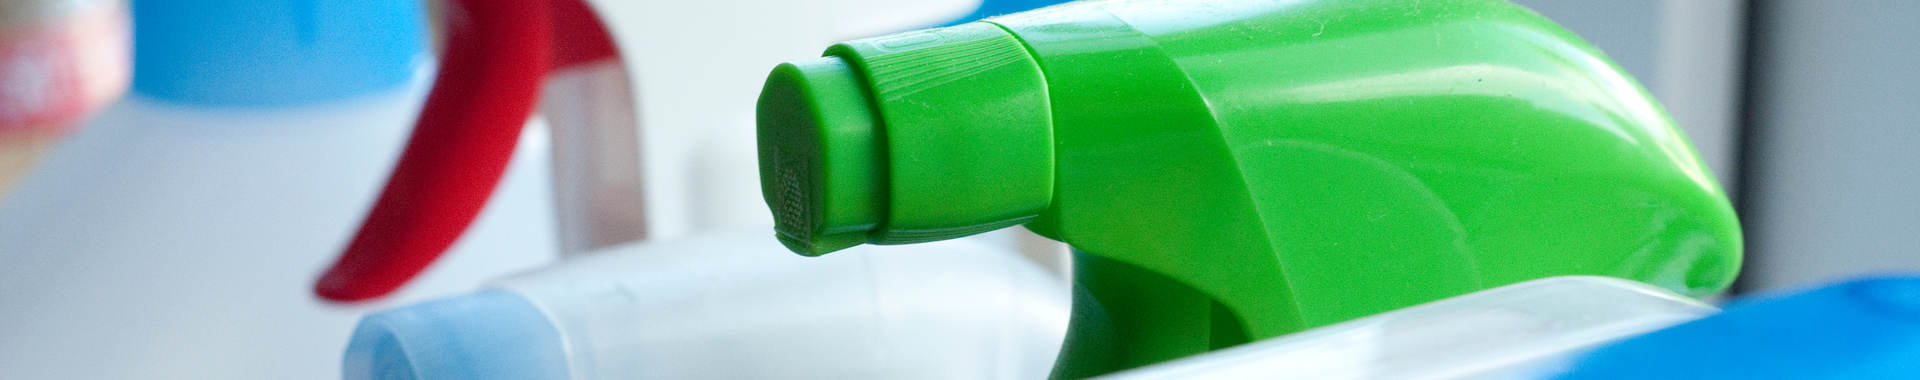 Cleaning solutions in spray bottles